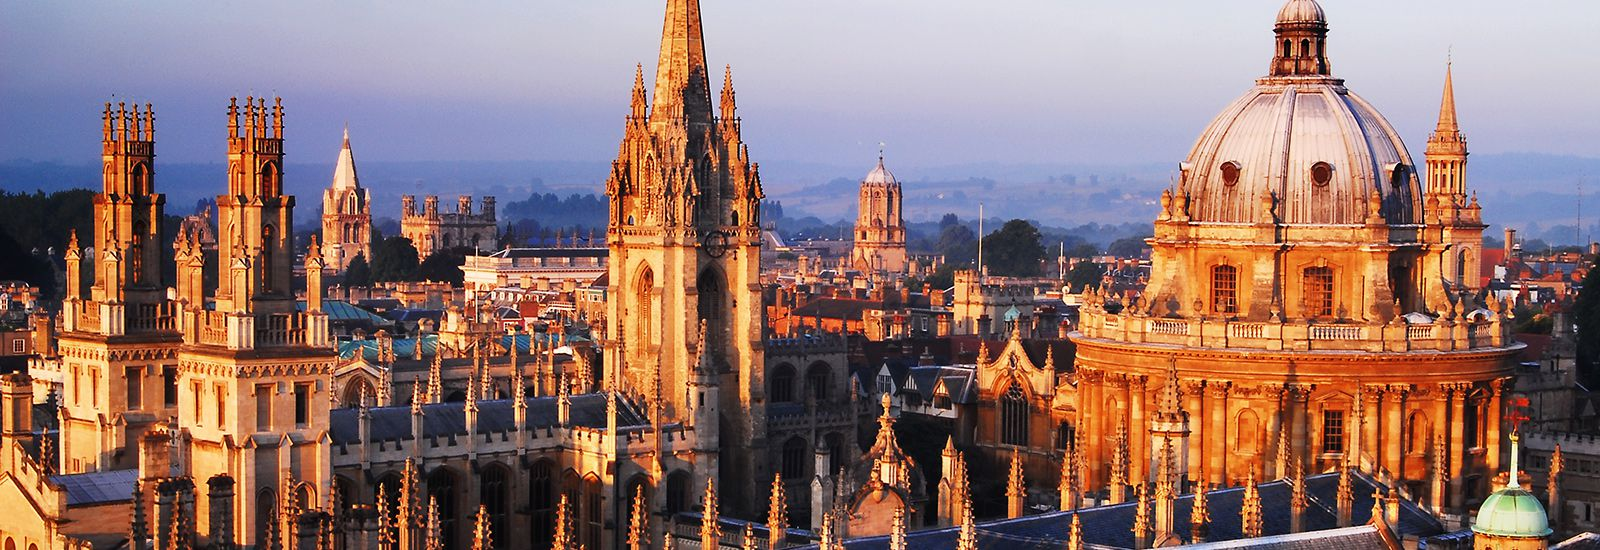 Report into anti-Semitism at Oxford University Labour Club to be made public, despite party censorship